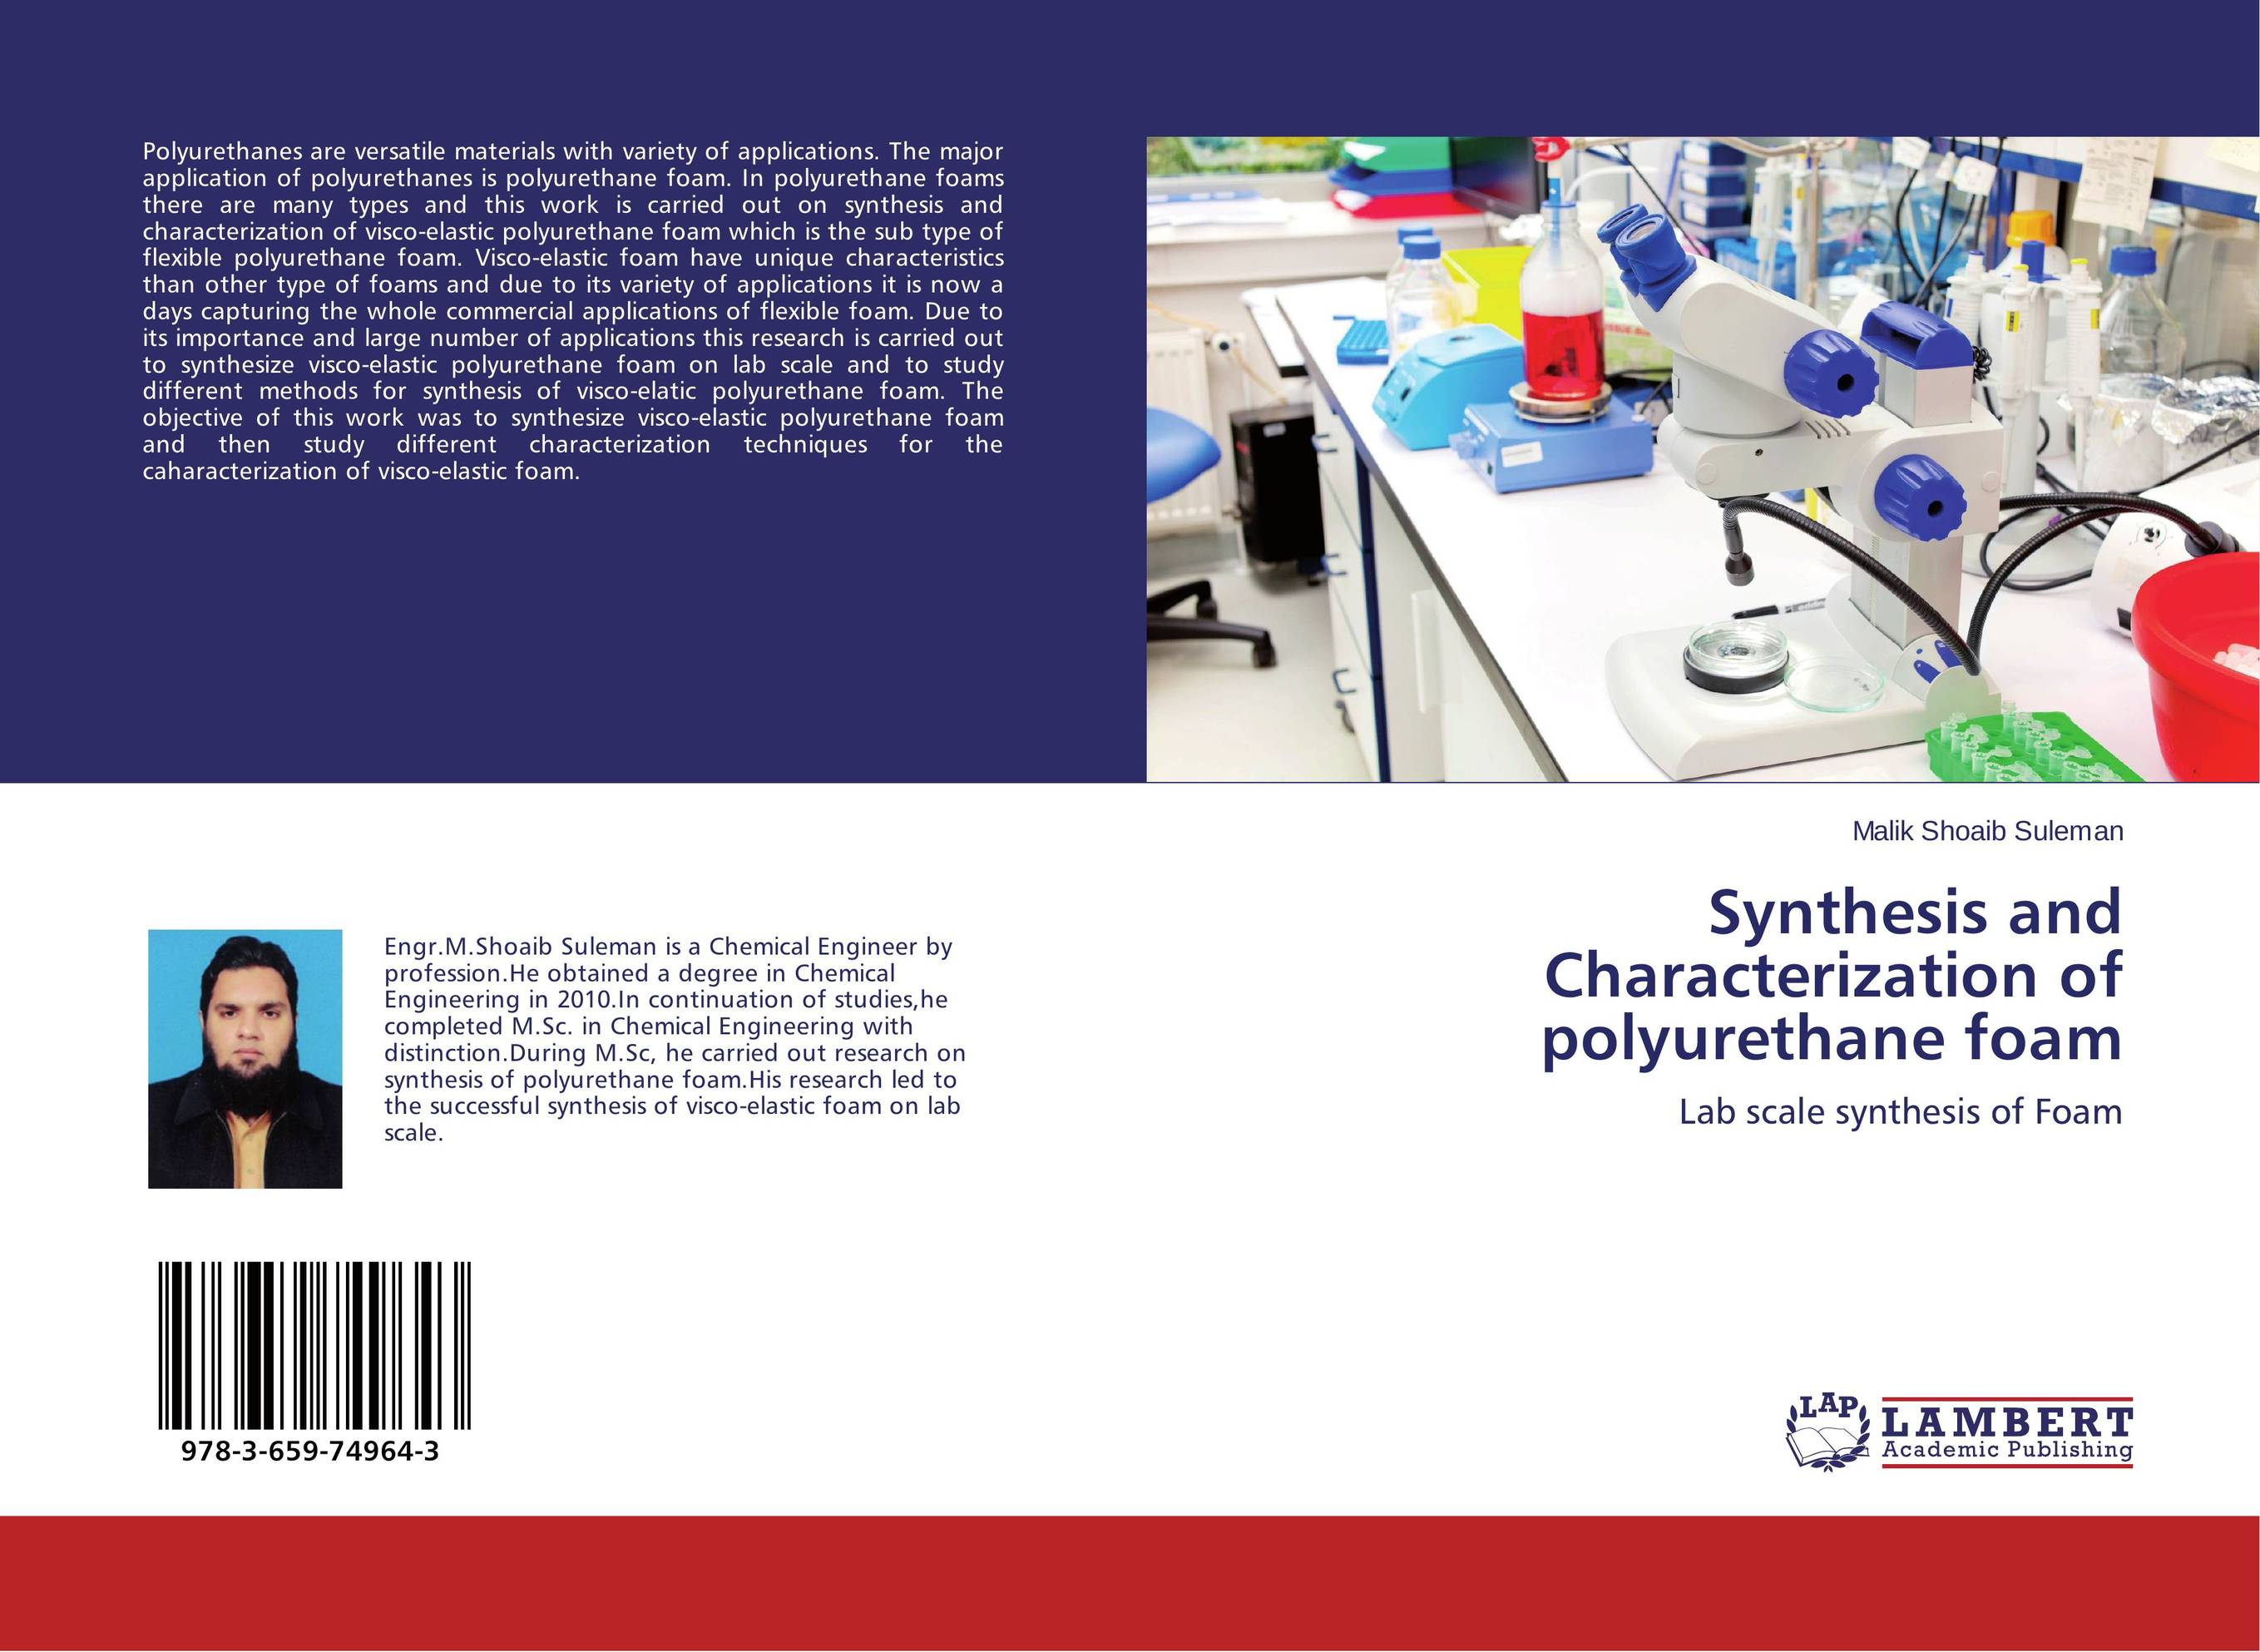 Synthesis and Characterization of polyurethane foam dennis hall g boronic acids preparation and applications in organic synthesis medicine and materials